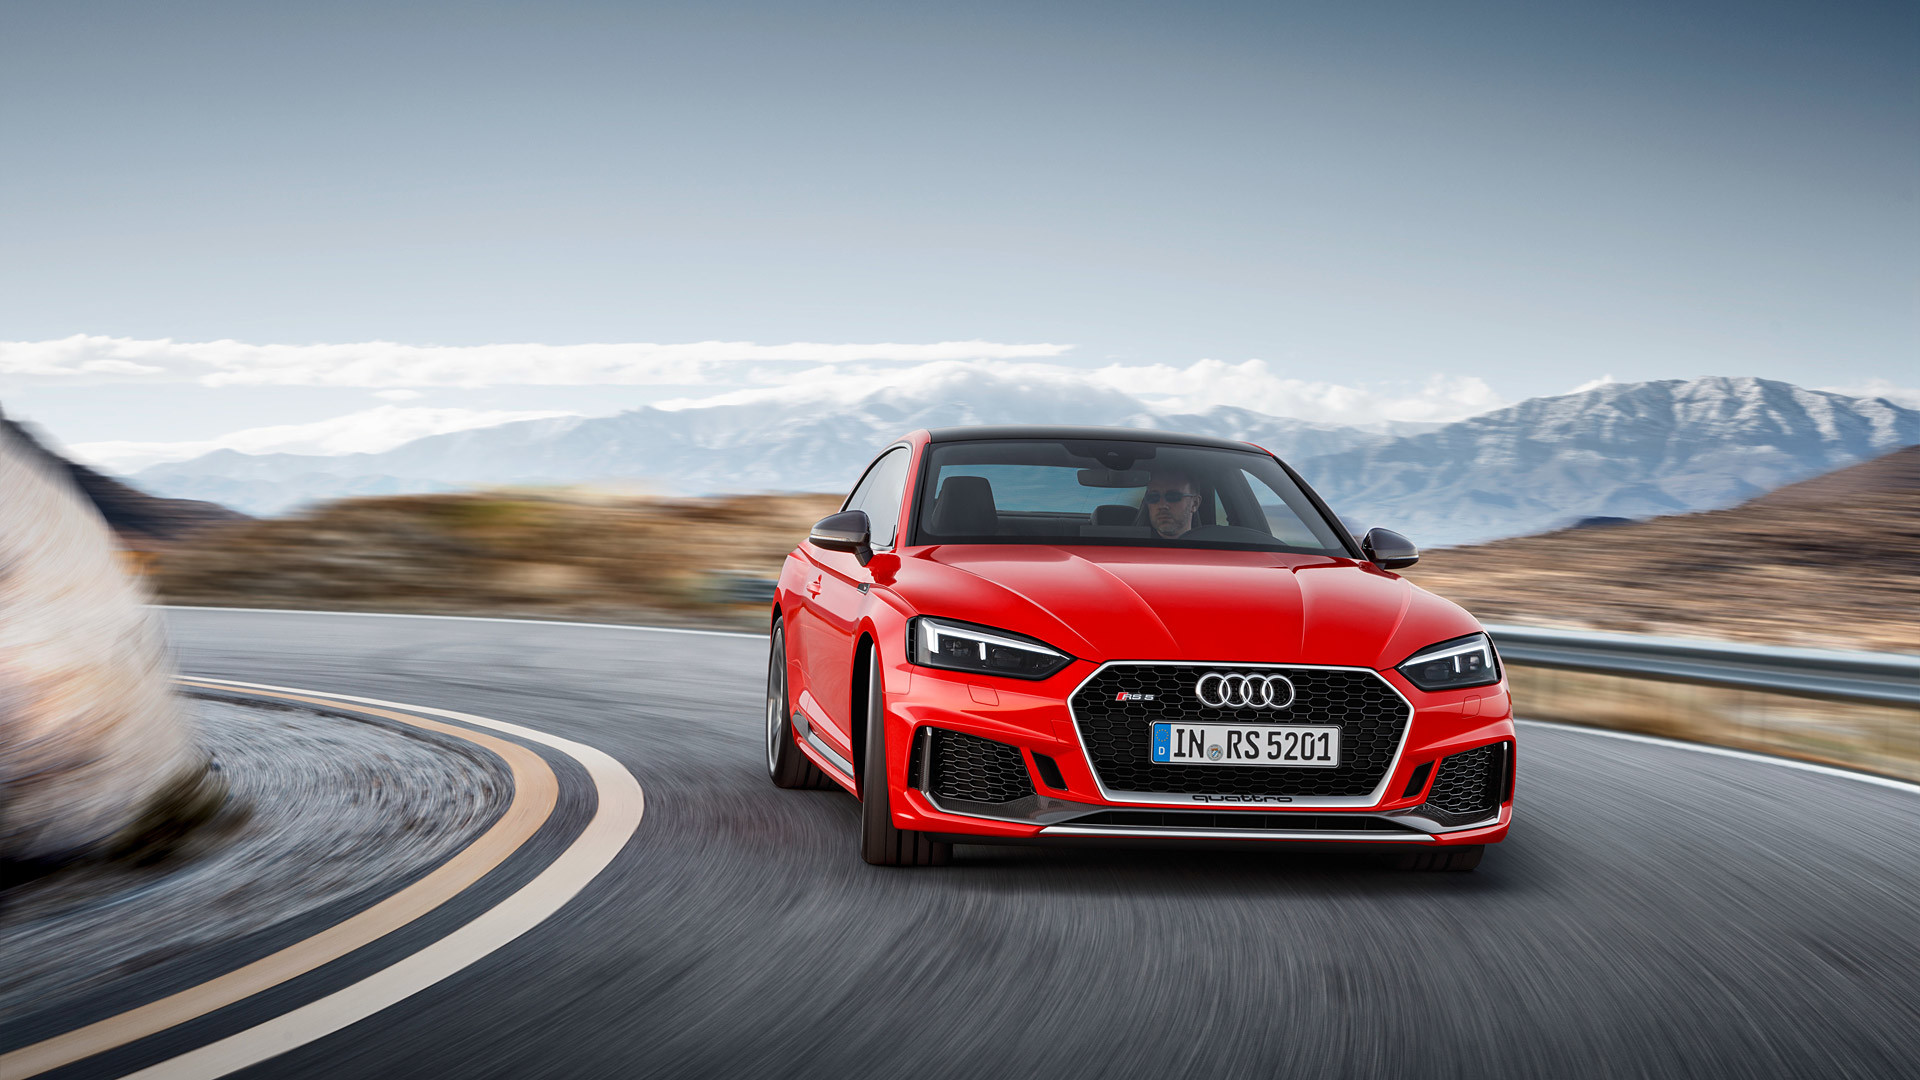 Audi Rs5 Wallpaper 77 Images